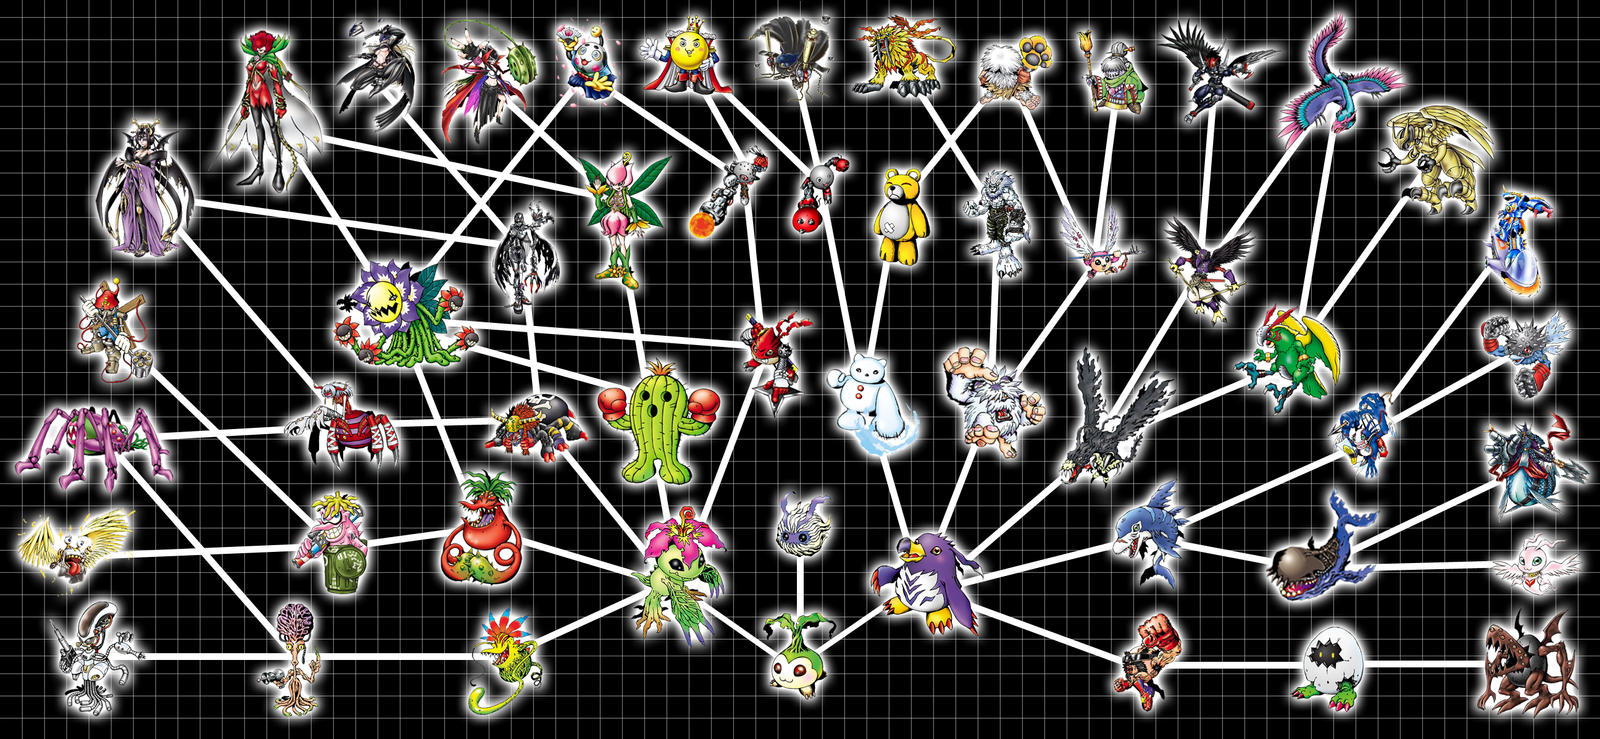 List of Digimon Tamers characters  Wikipedia